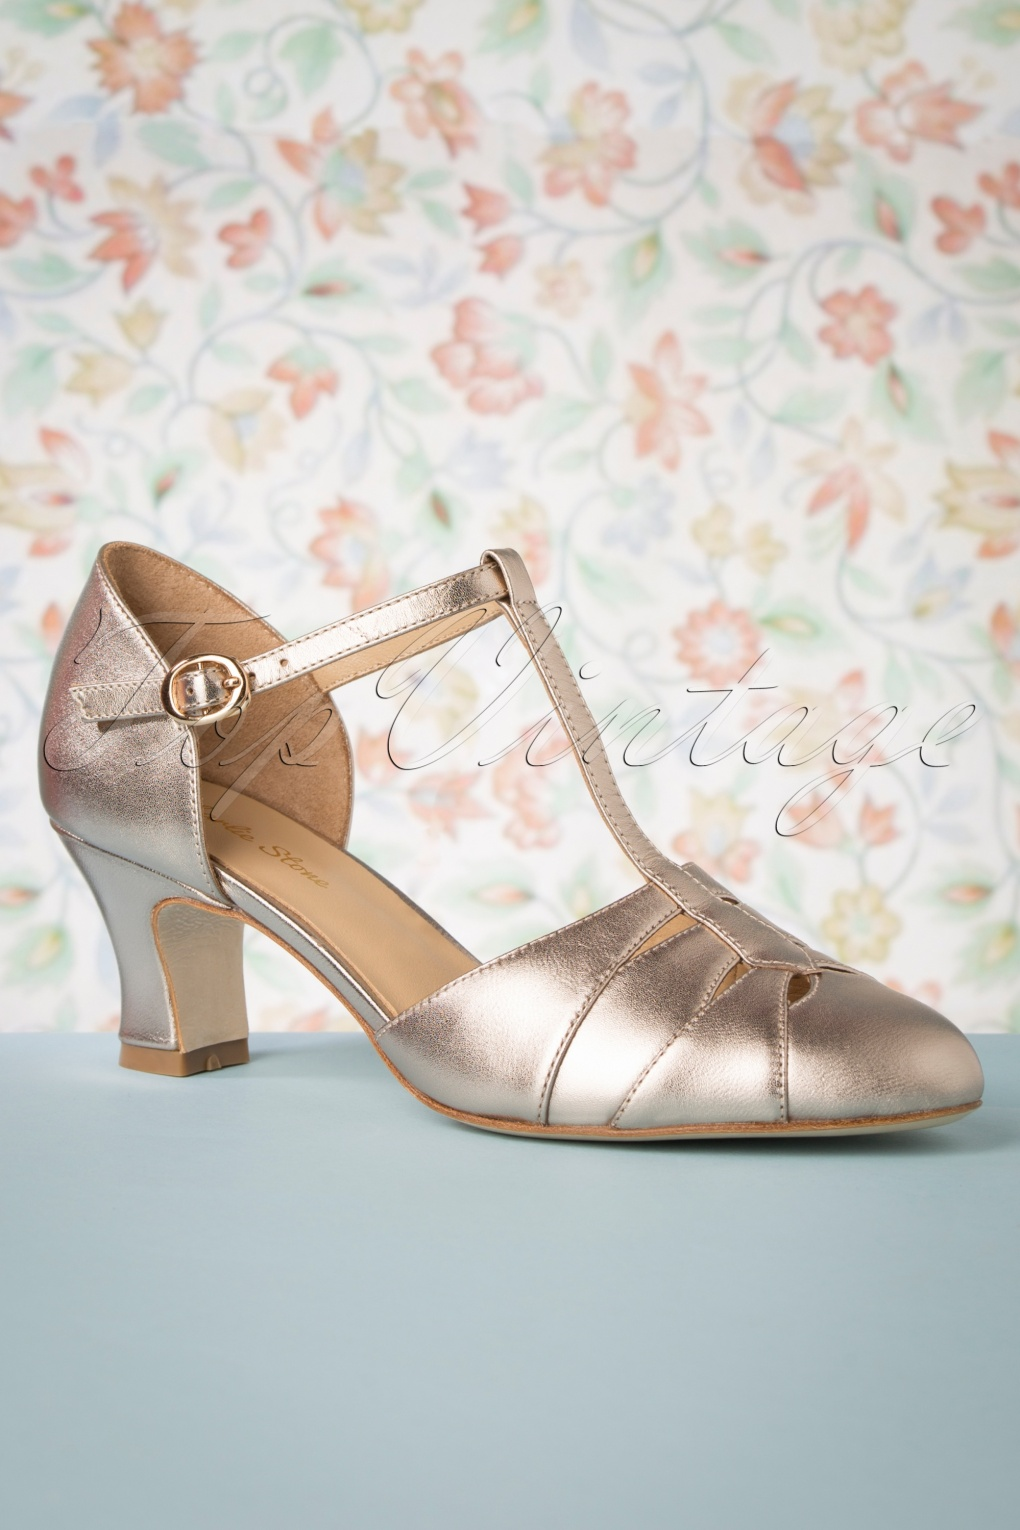 1930s Dresses, Shoes, Lingerie, Clothing UK 50s Monaco T-Strap Pumps in French Champagne £147.02 AT vintagedancer.com